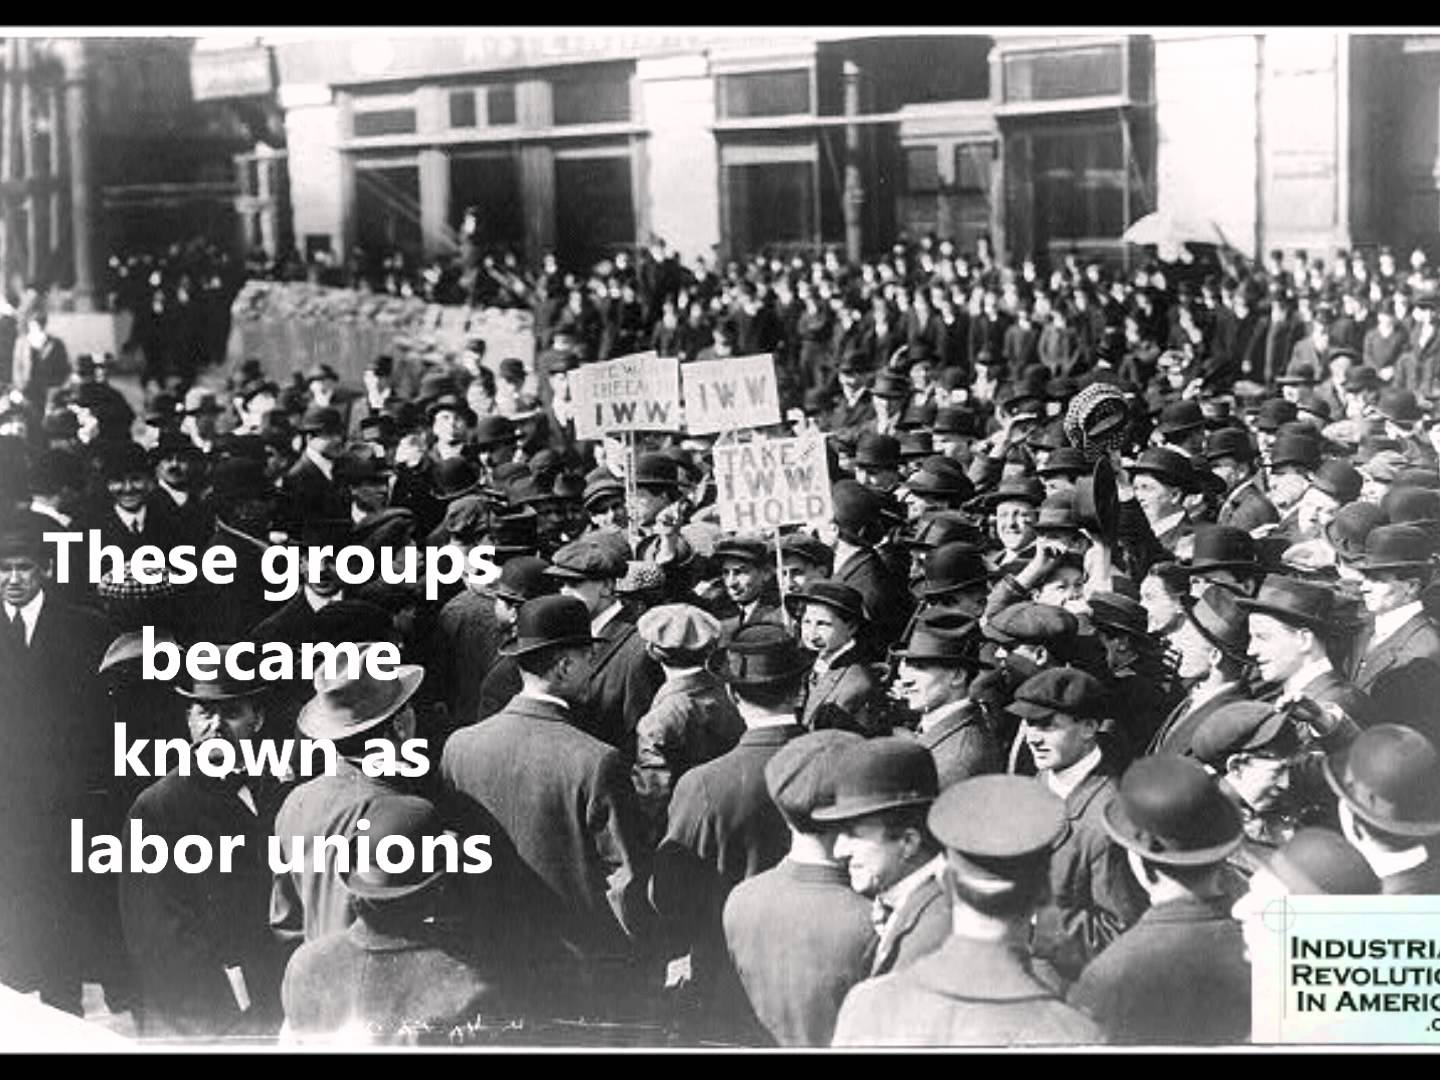 the history of labor unions Trade unions, also known as labor unions in the united states, are organizations of workers in a common trade who have organized into groups dedicated to improving the workers' work life.